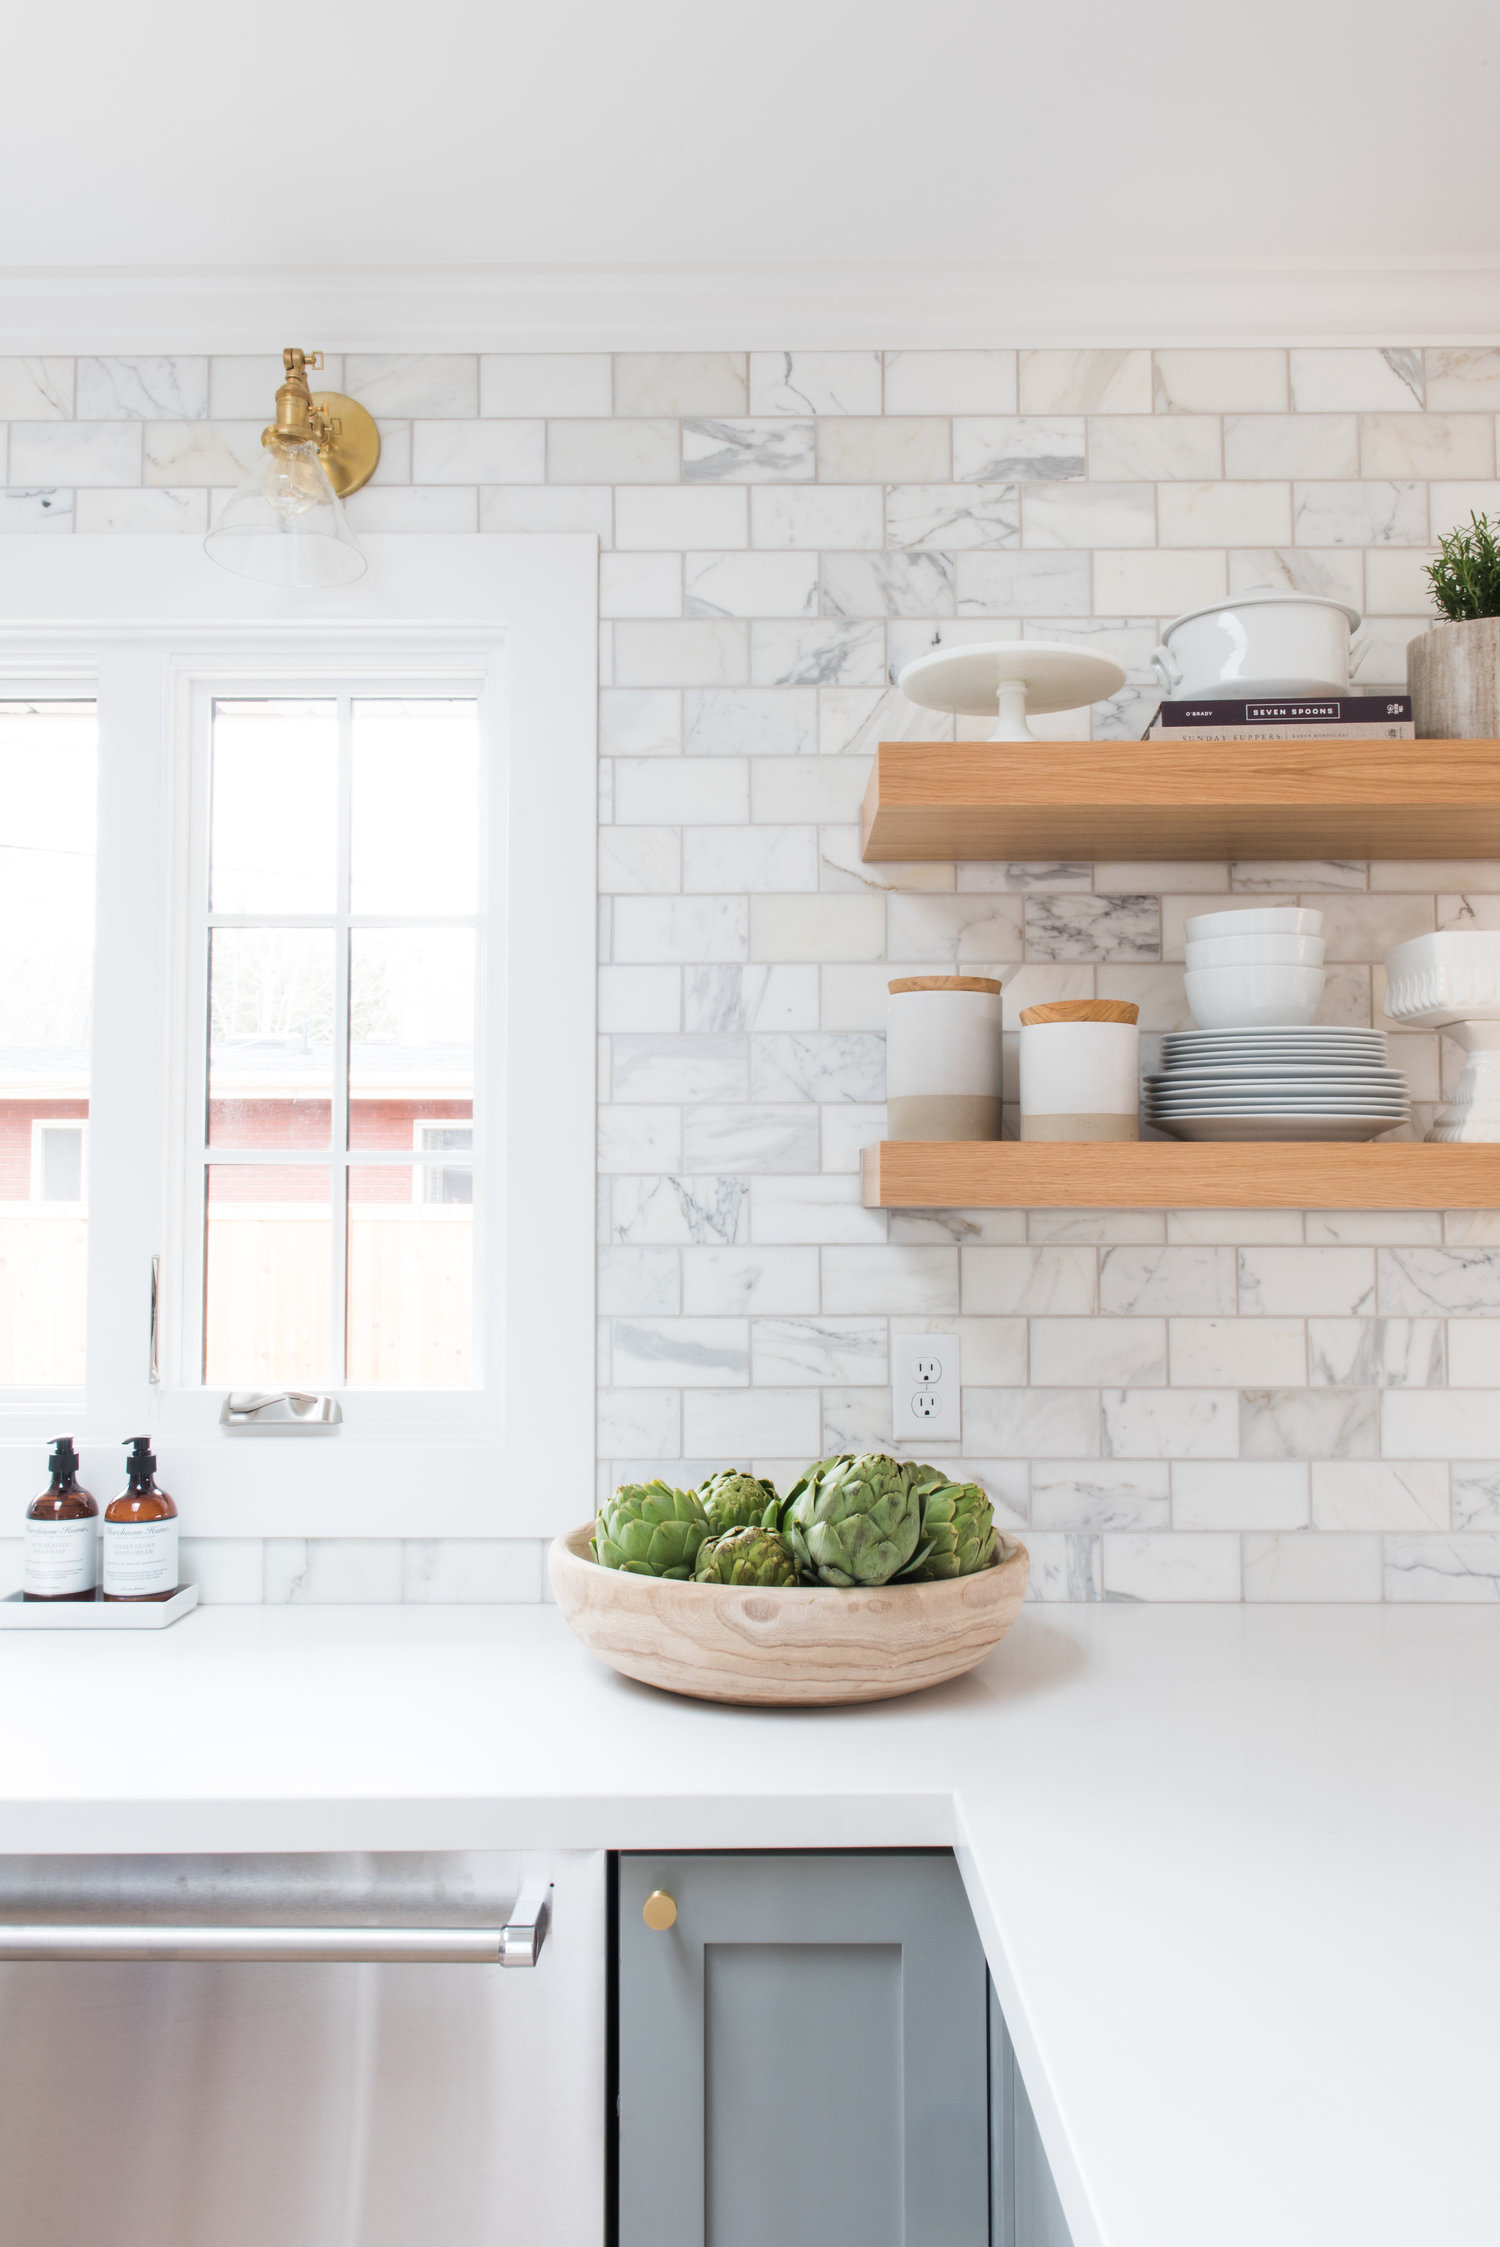 Captivating This One Trick Studio Mcgee Kitchen Open Shelving Design Kitchen Open Shelving Under Cabinet Make Your Kitchen Feel Larger houzz-03 Kitchen Open Shelving